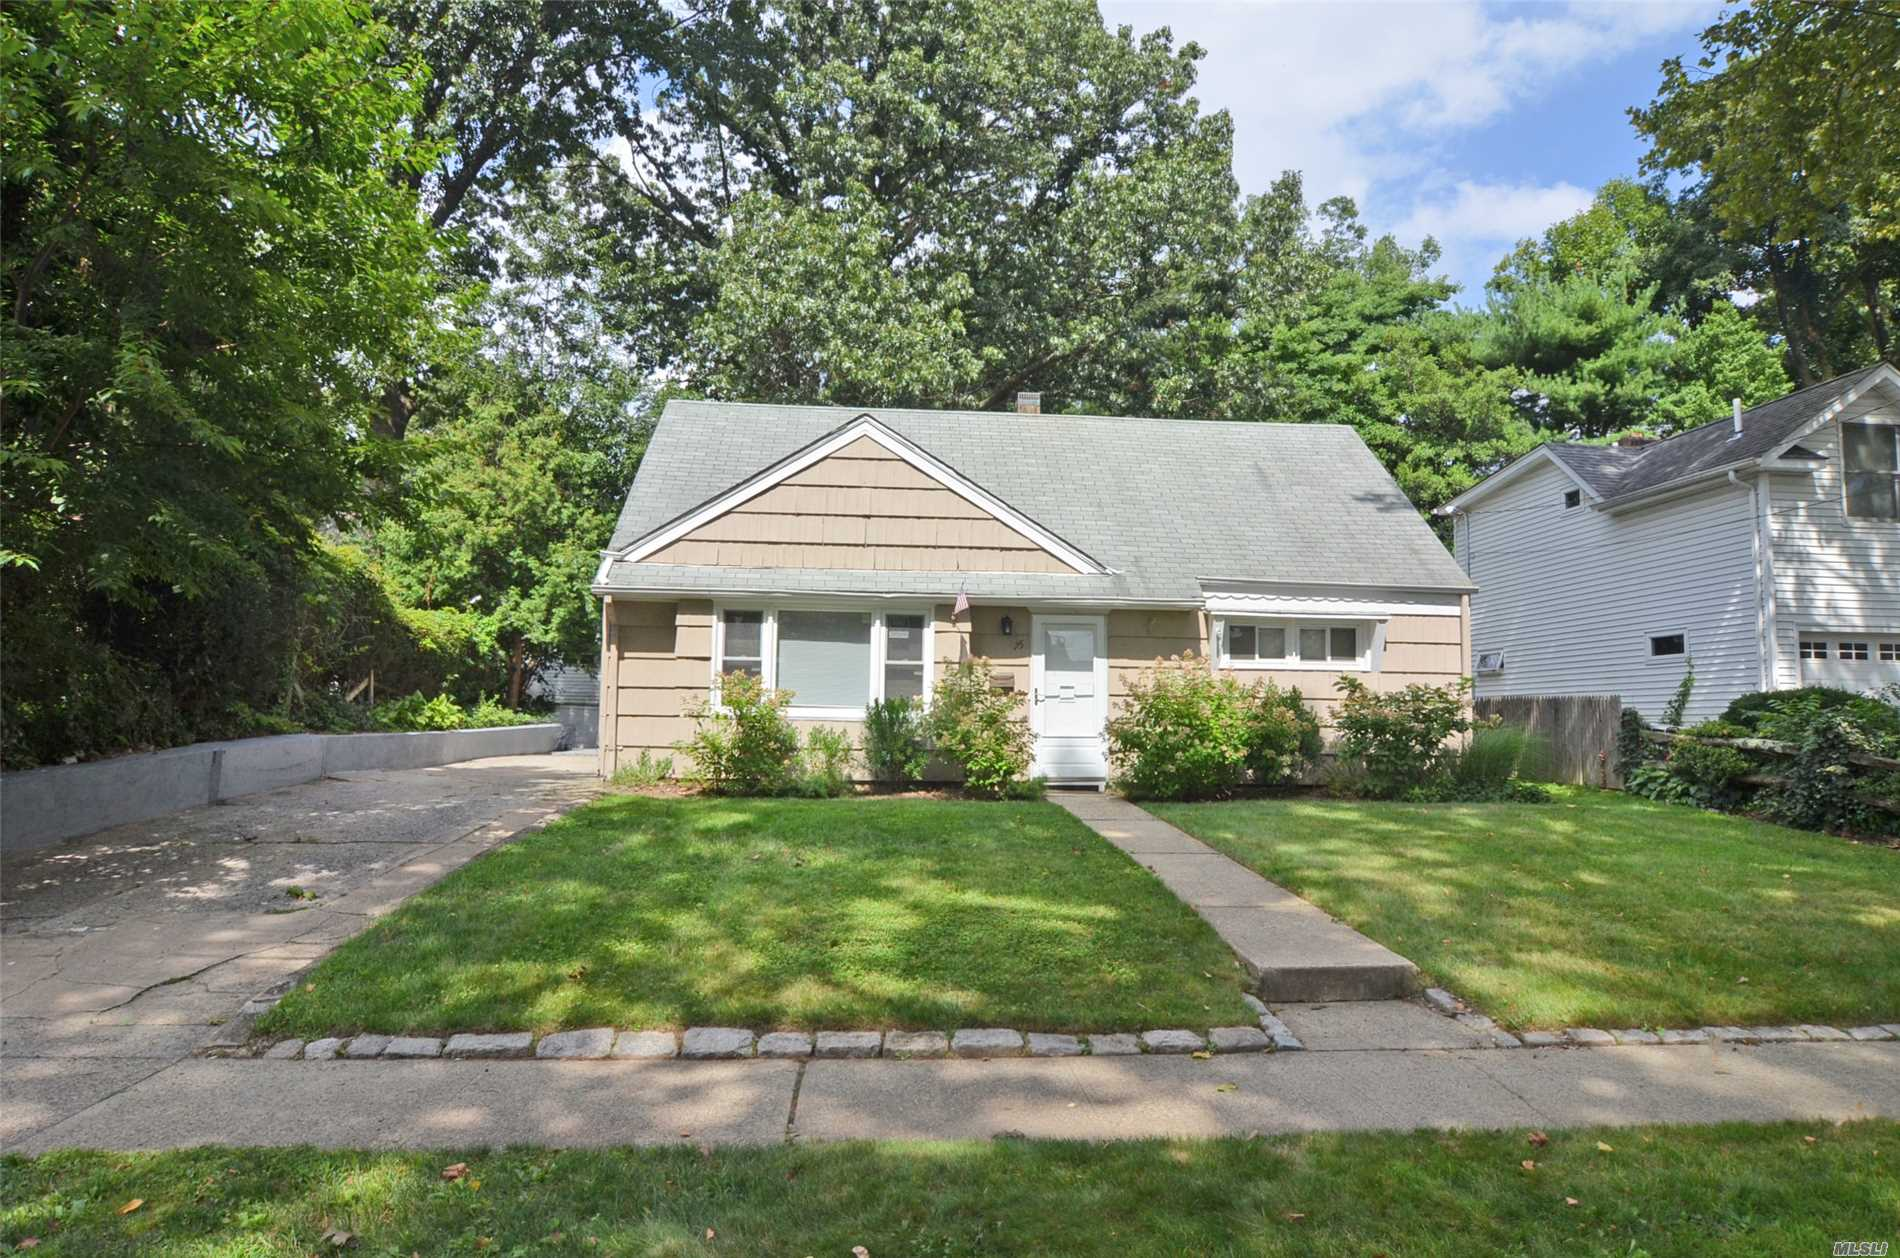 Lovely Cape Home Set On Quiet Block In Fabulous Terrace Neighborhood. All New Windows. All New Carpeting. Newly Painted Interior. Large Patio With Great Backyard.